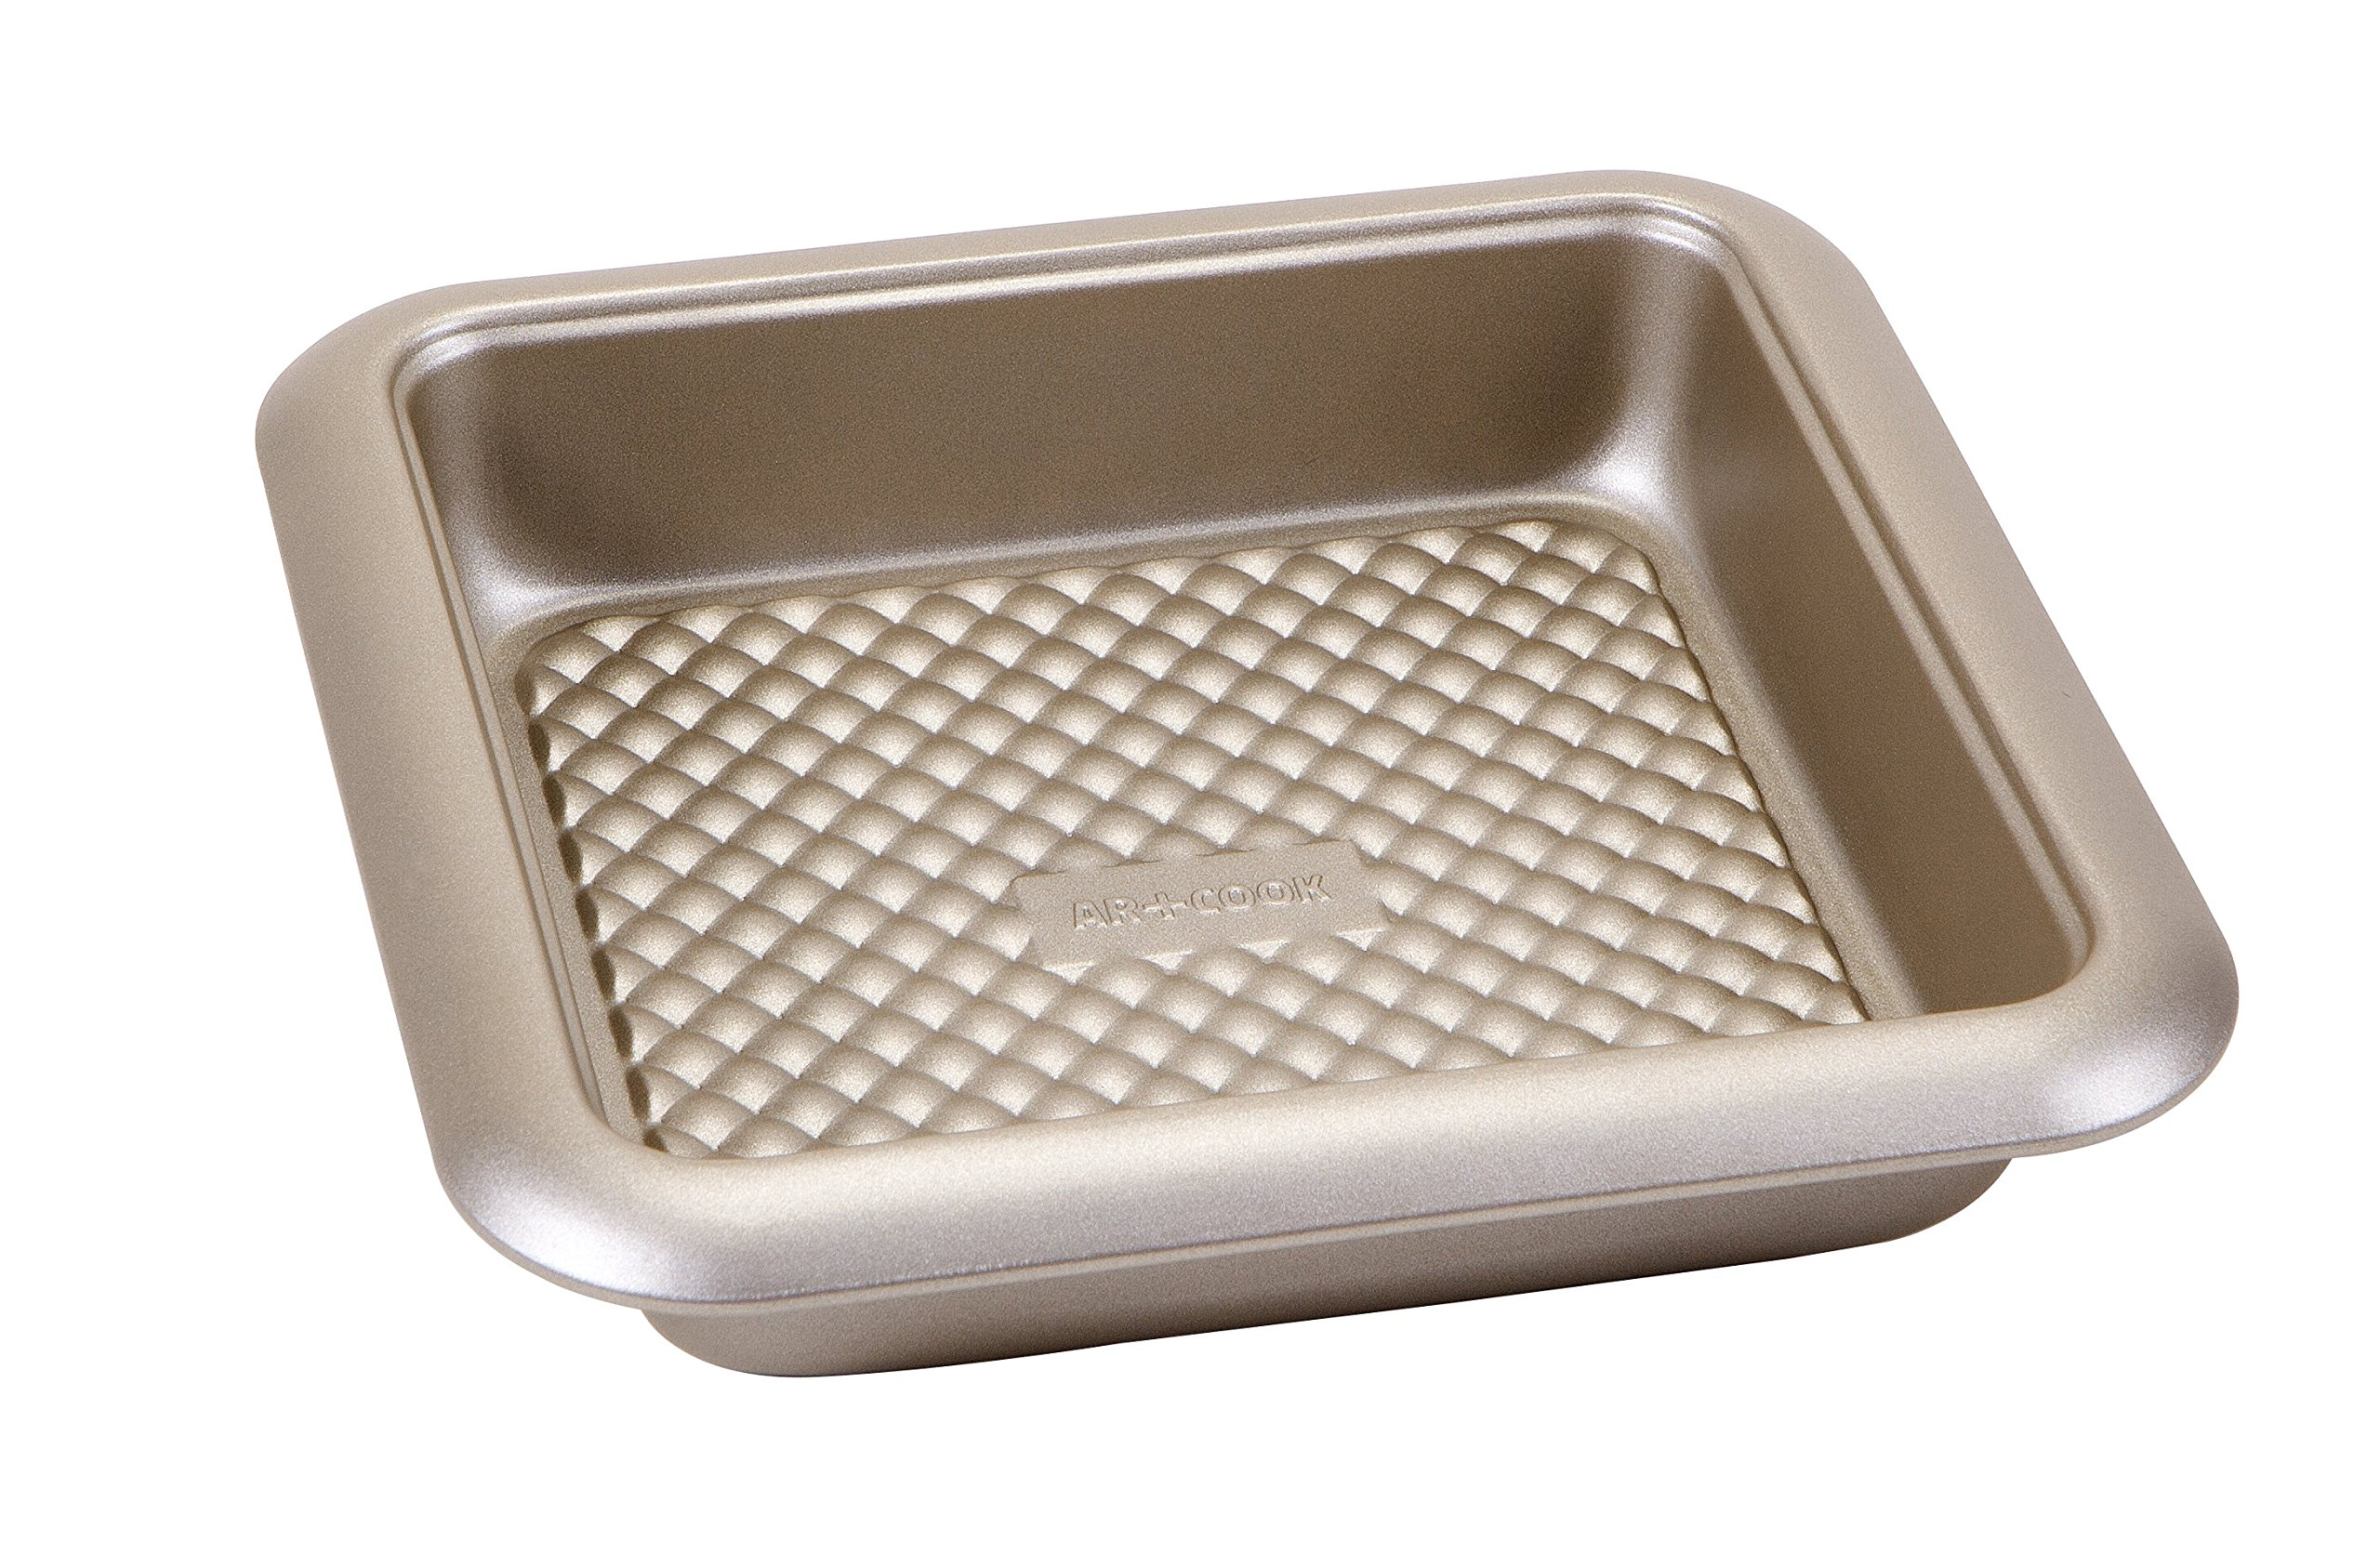 Art and Cook Non-Stick Carbon Steel Square Baking Pan, 9.5'' x 9.5'', Champagne